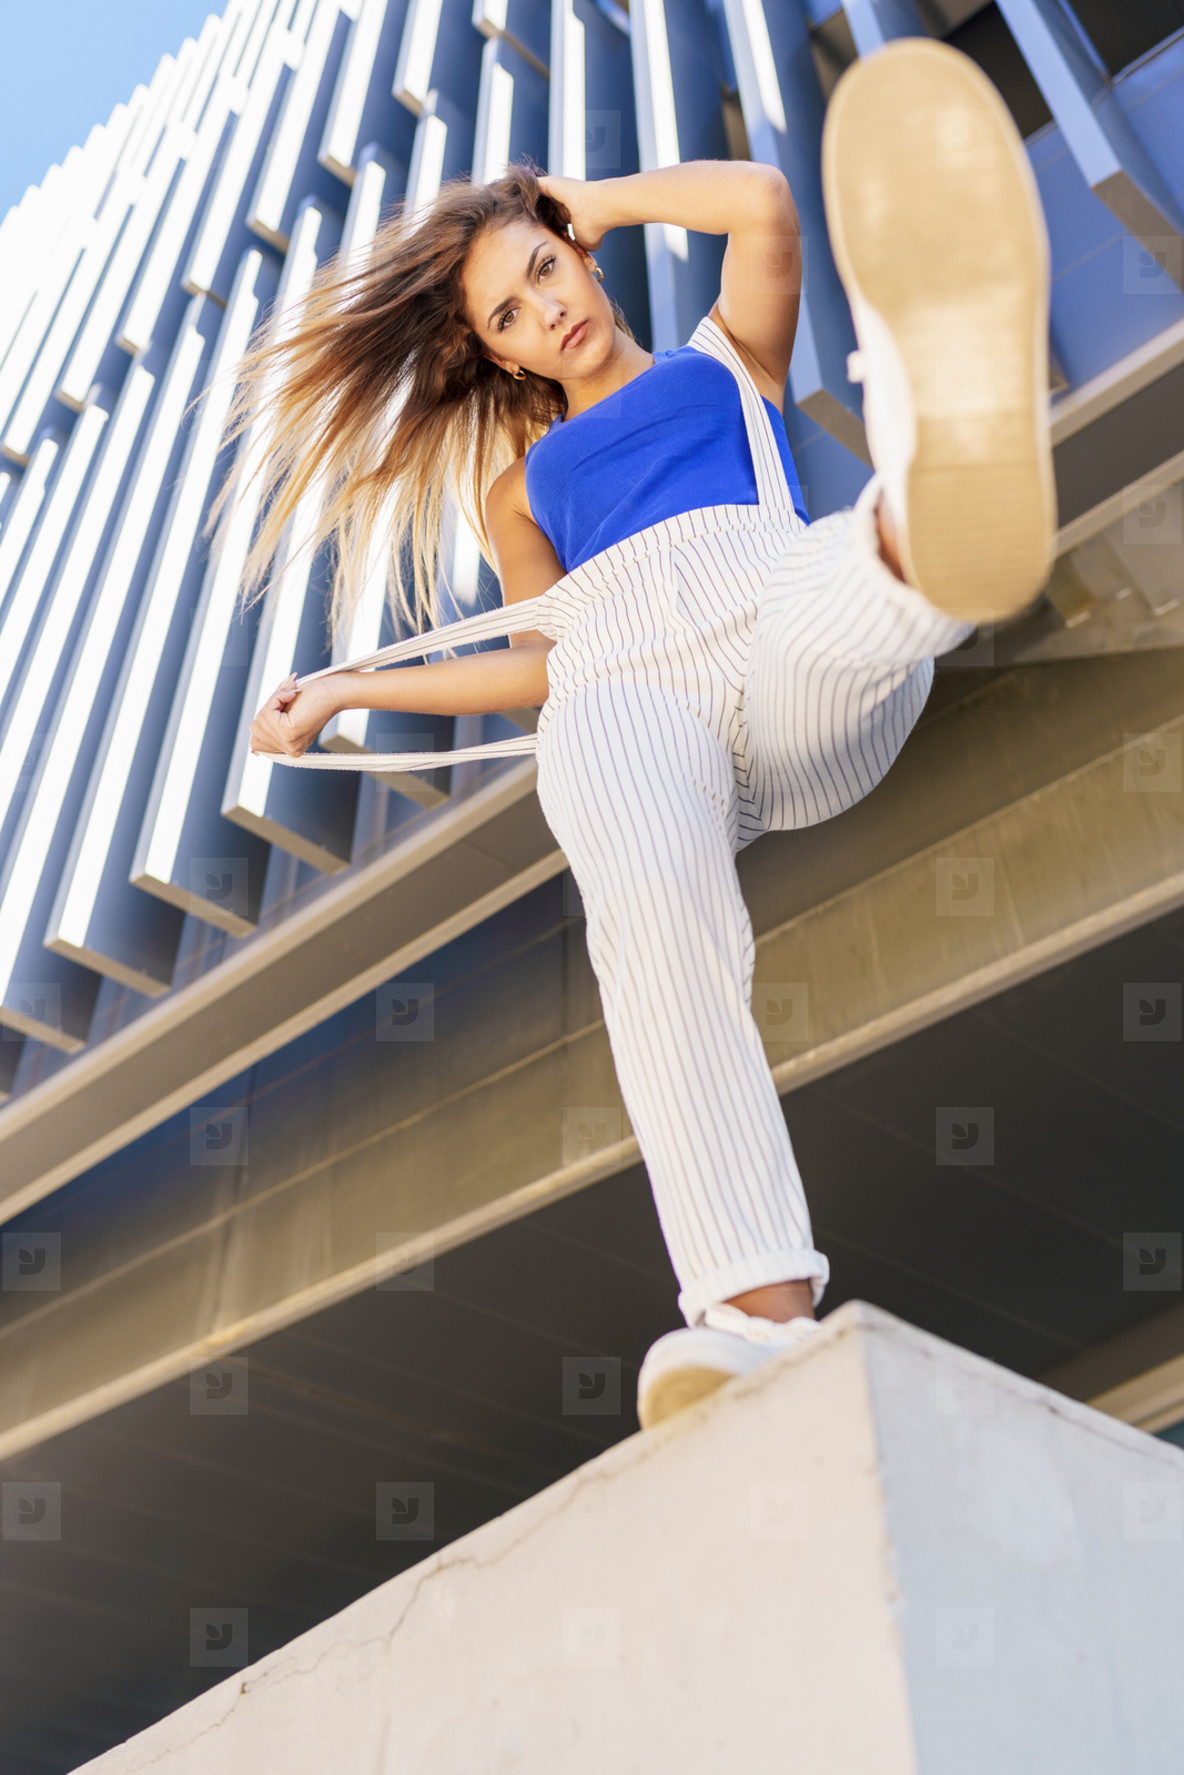 View from below of young girl throwing her foot in the air